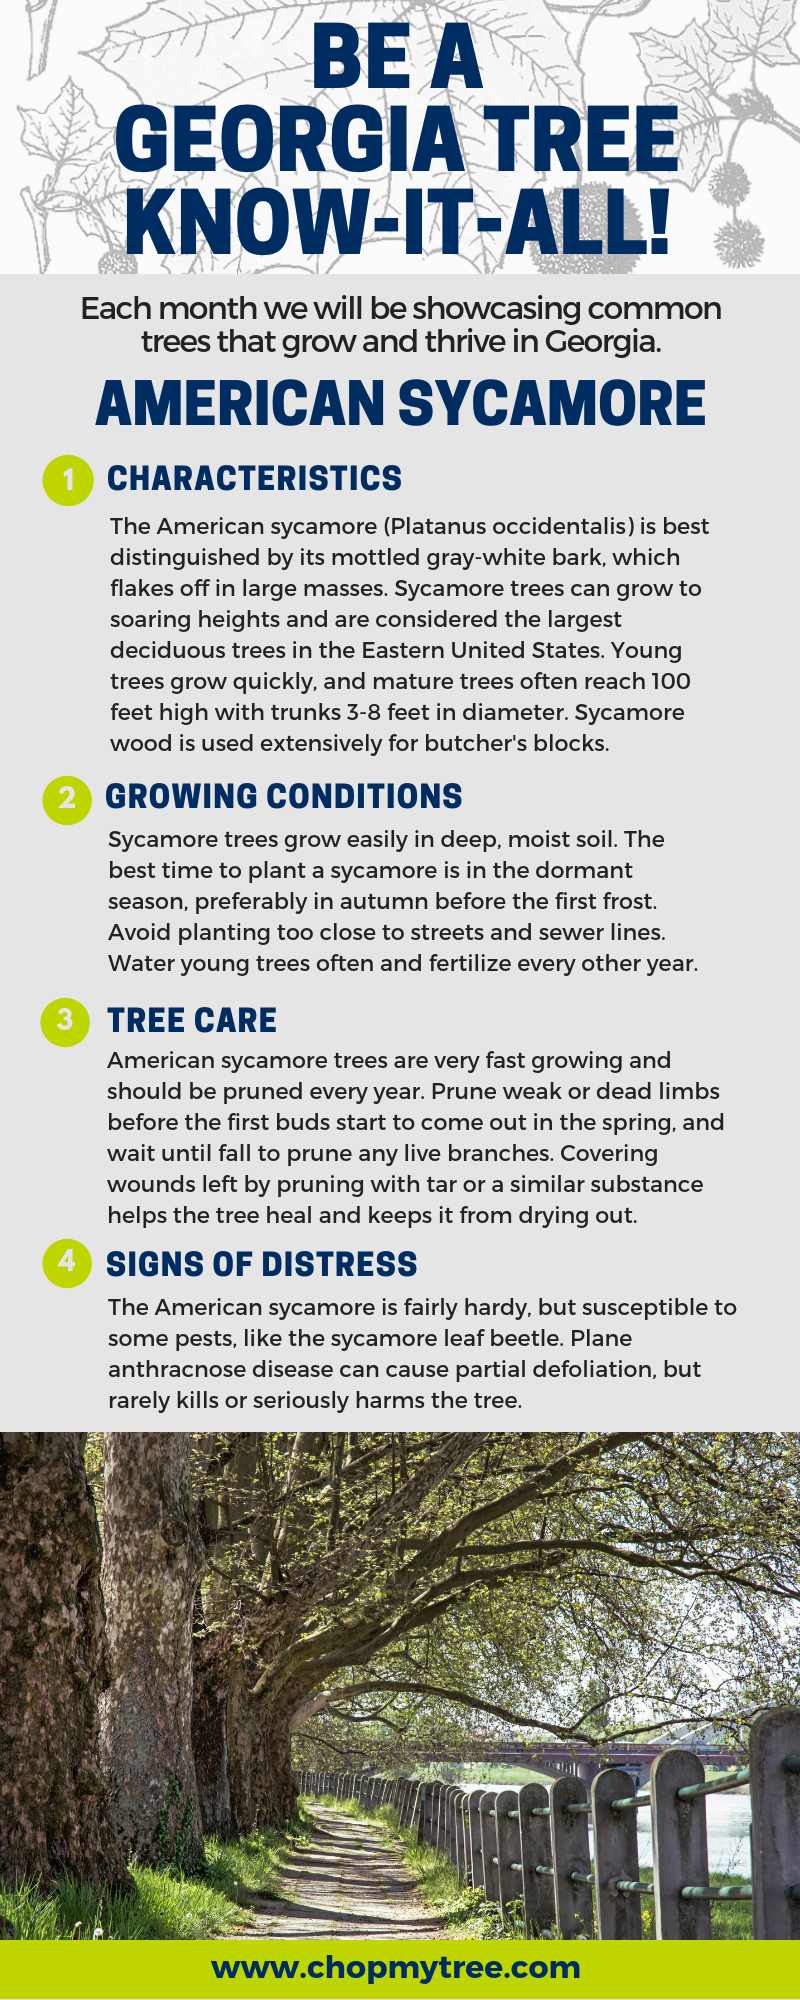 American Sycamore tree infographic